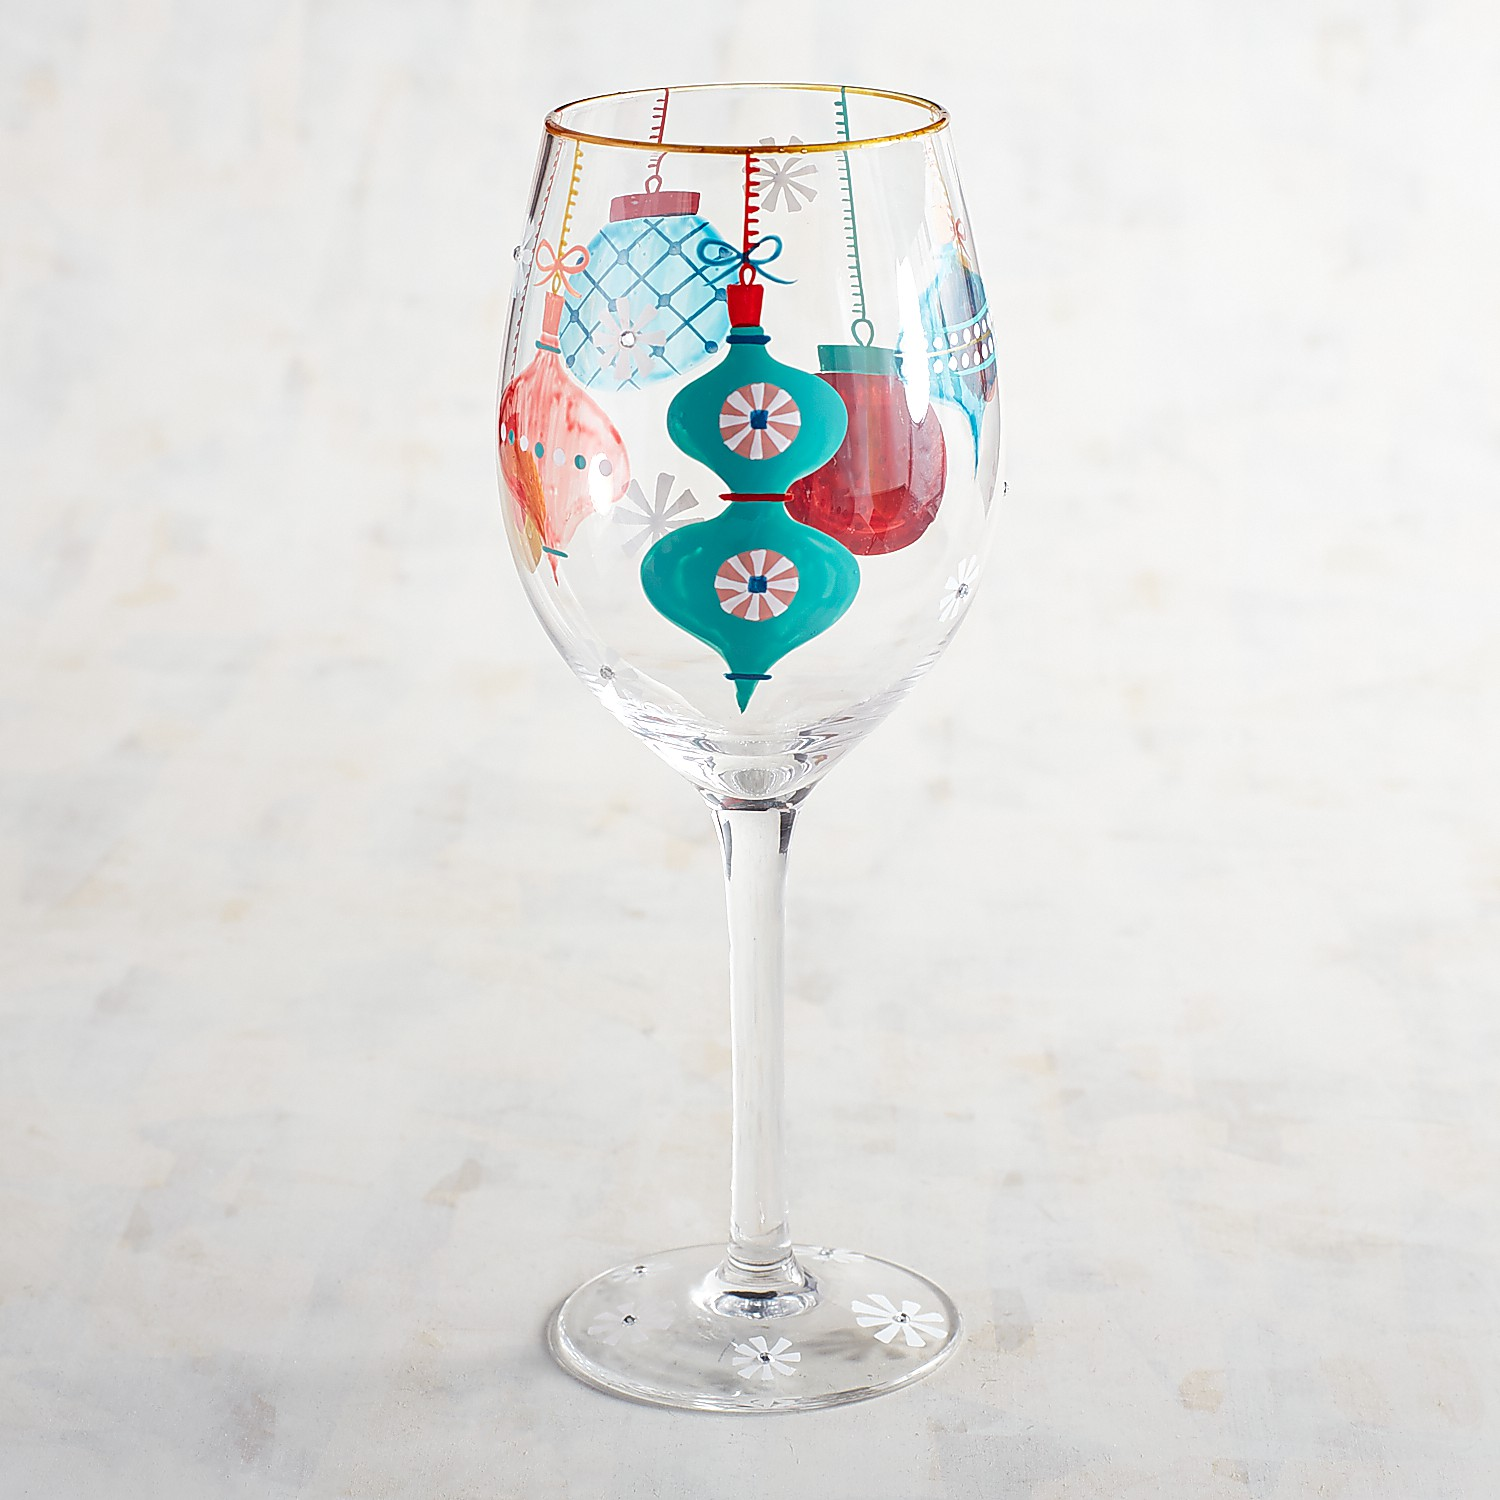 Festive Ornament Hand-Painted Wine Glass